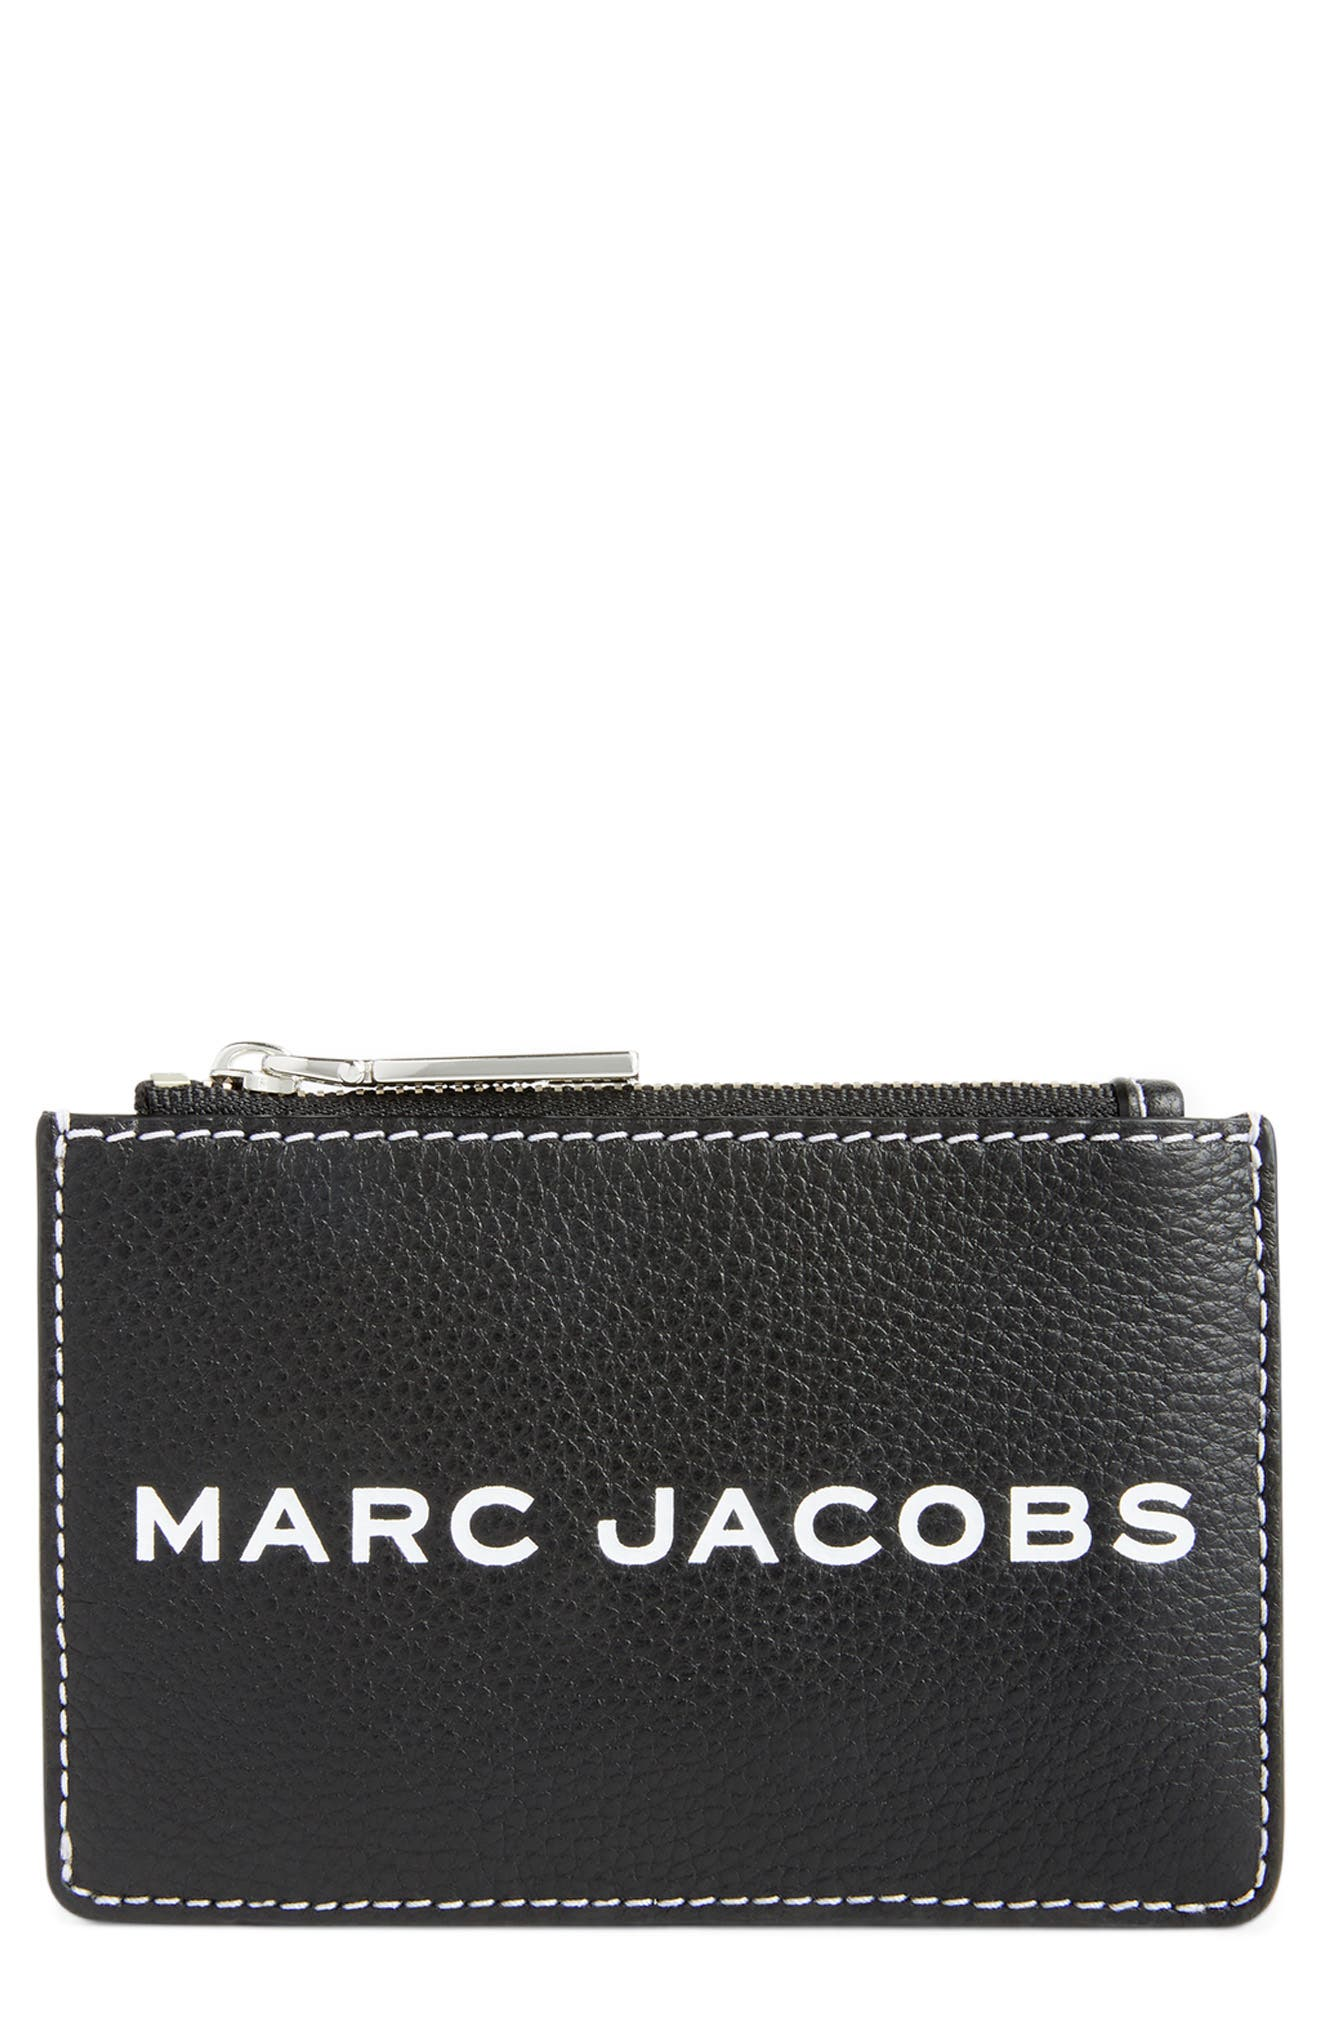 9a3fed98ba MARC JACOBS Wallets & Card Cases for Women | Nordstrom